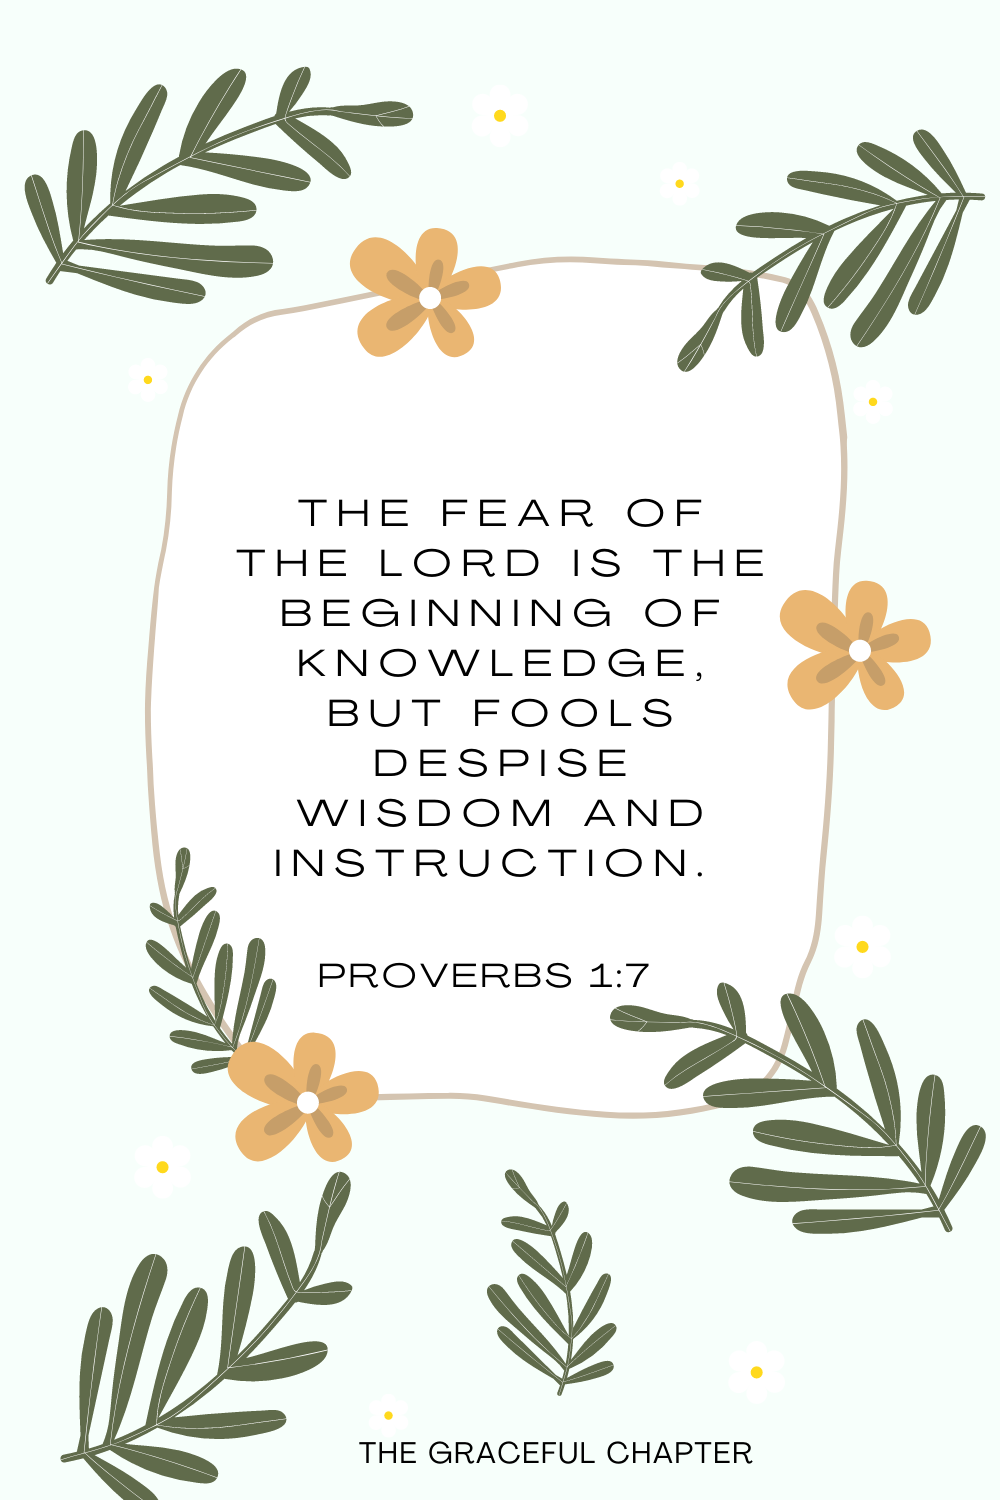 The fear of the Lord is the beginning of knowledge, but fools despise wisdom and instruction. Proverbs 1:7